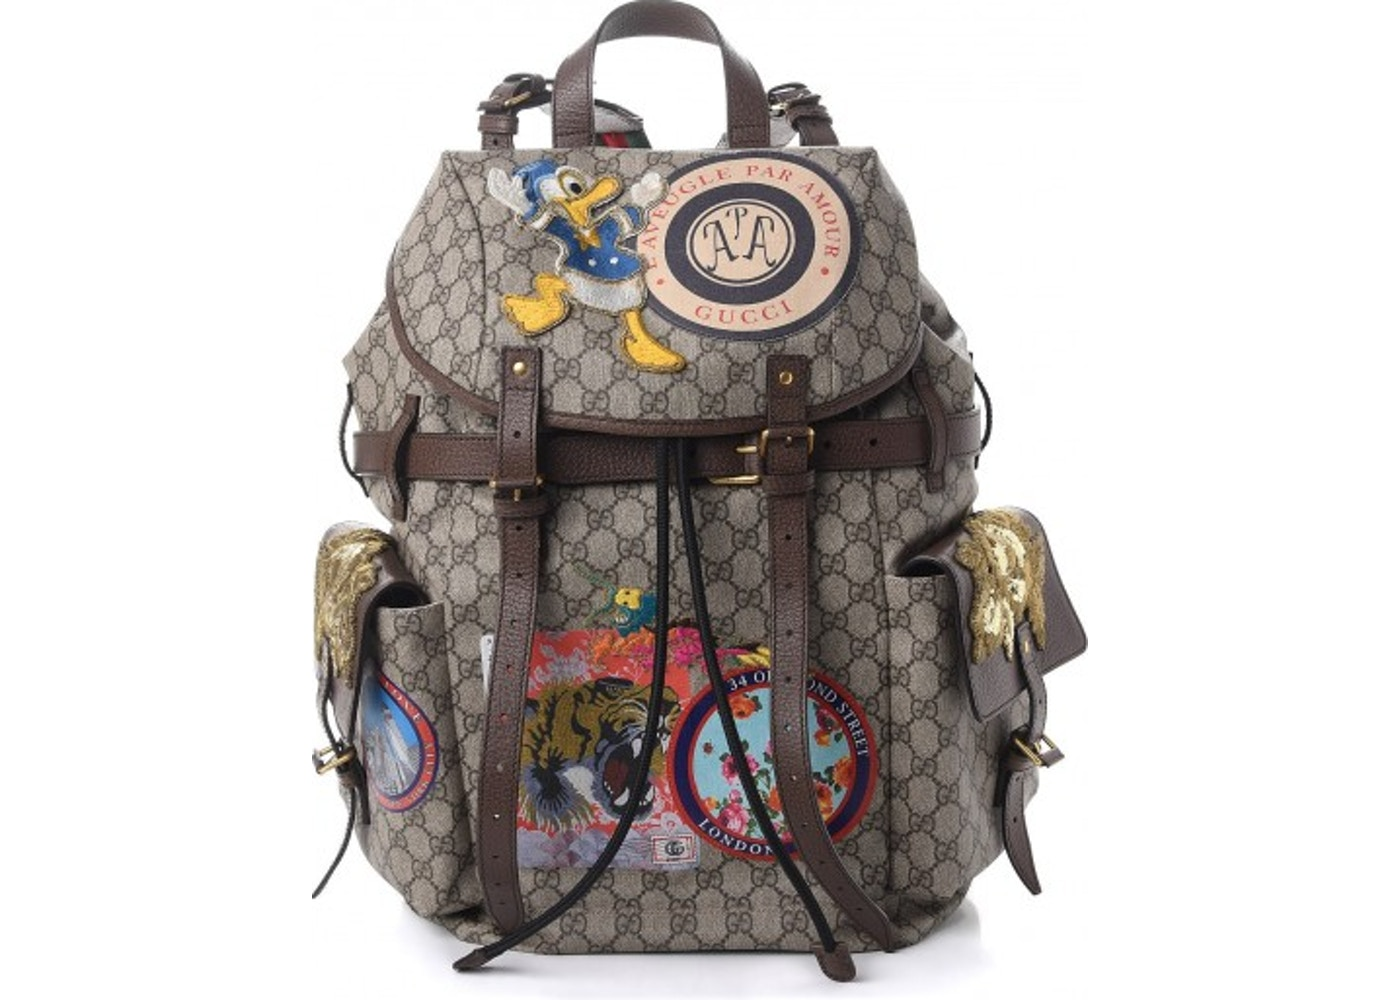 65116aaba60 Gucci Flap Backpack Monogram GG Supreme Embroidered Patches ...